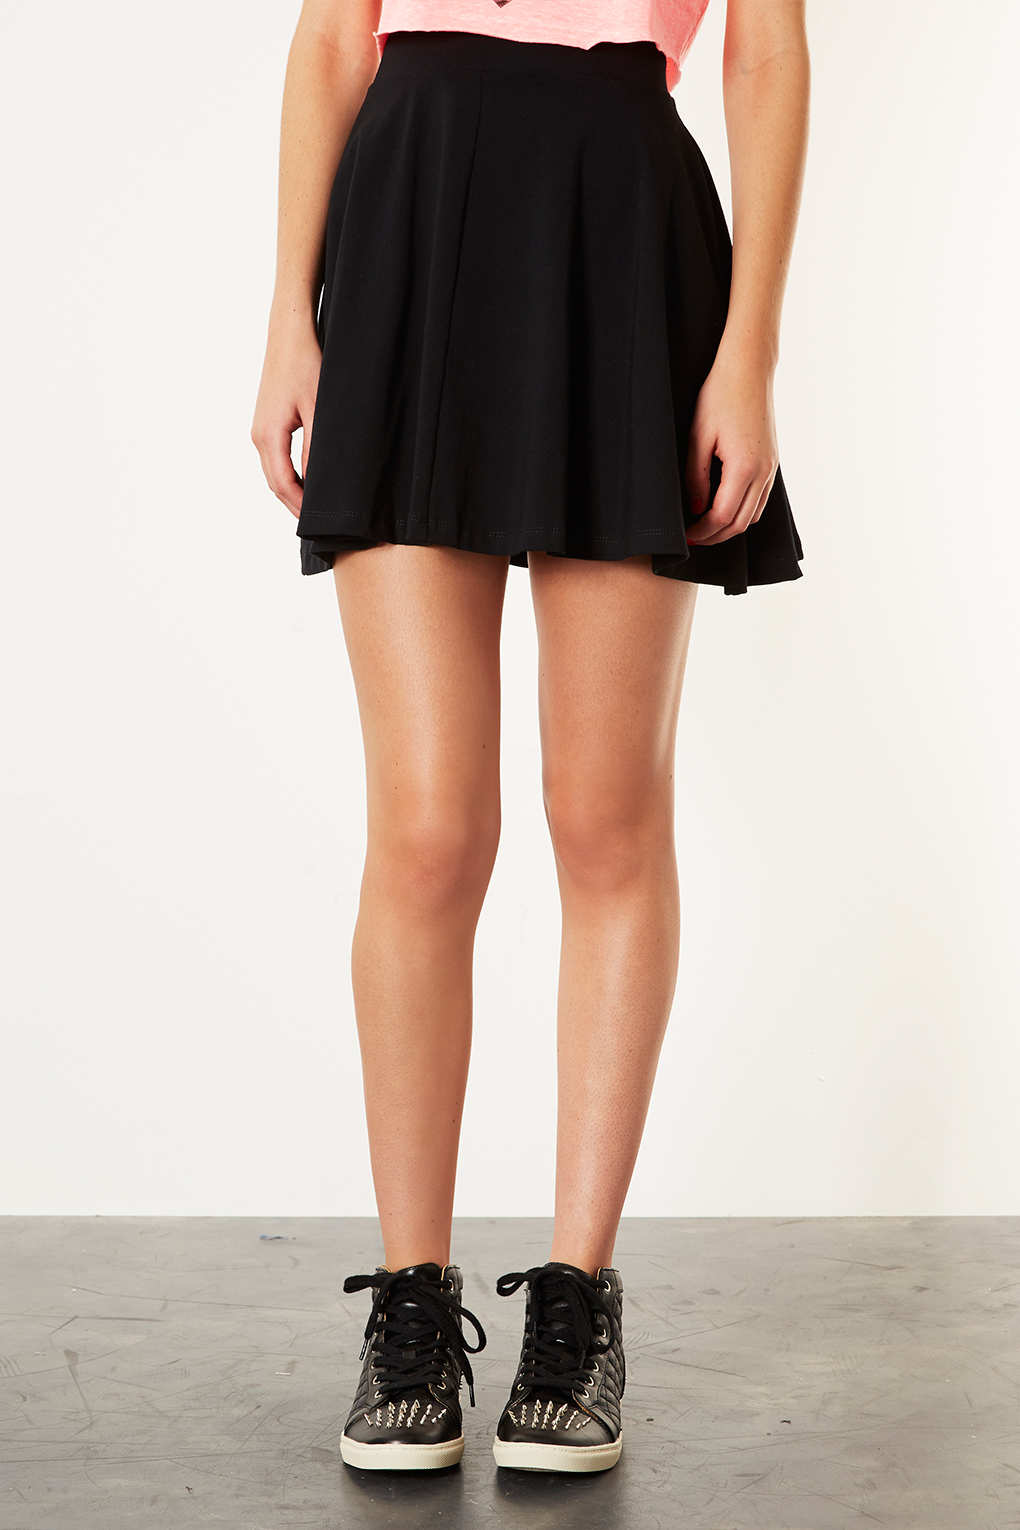 Topshop Black High Waist Skater Skirt in Black | Lyst